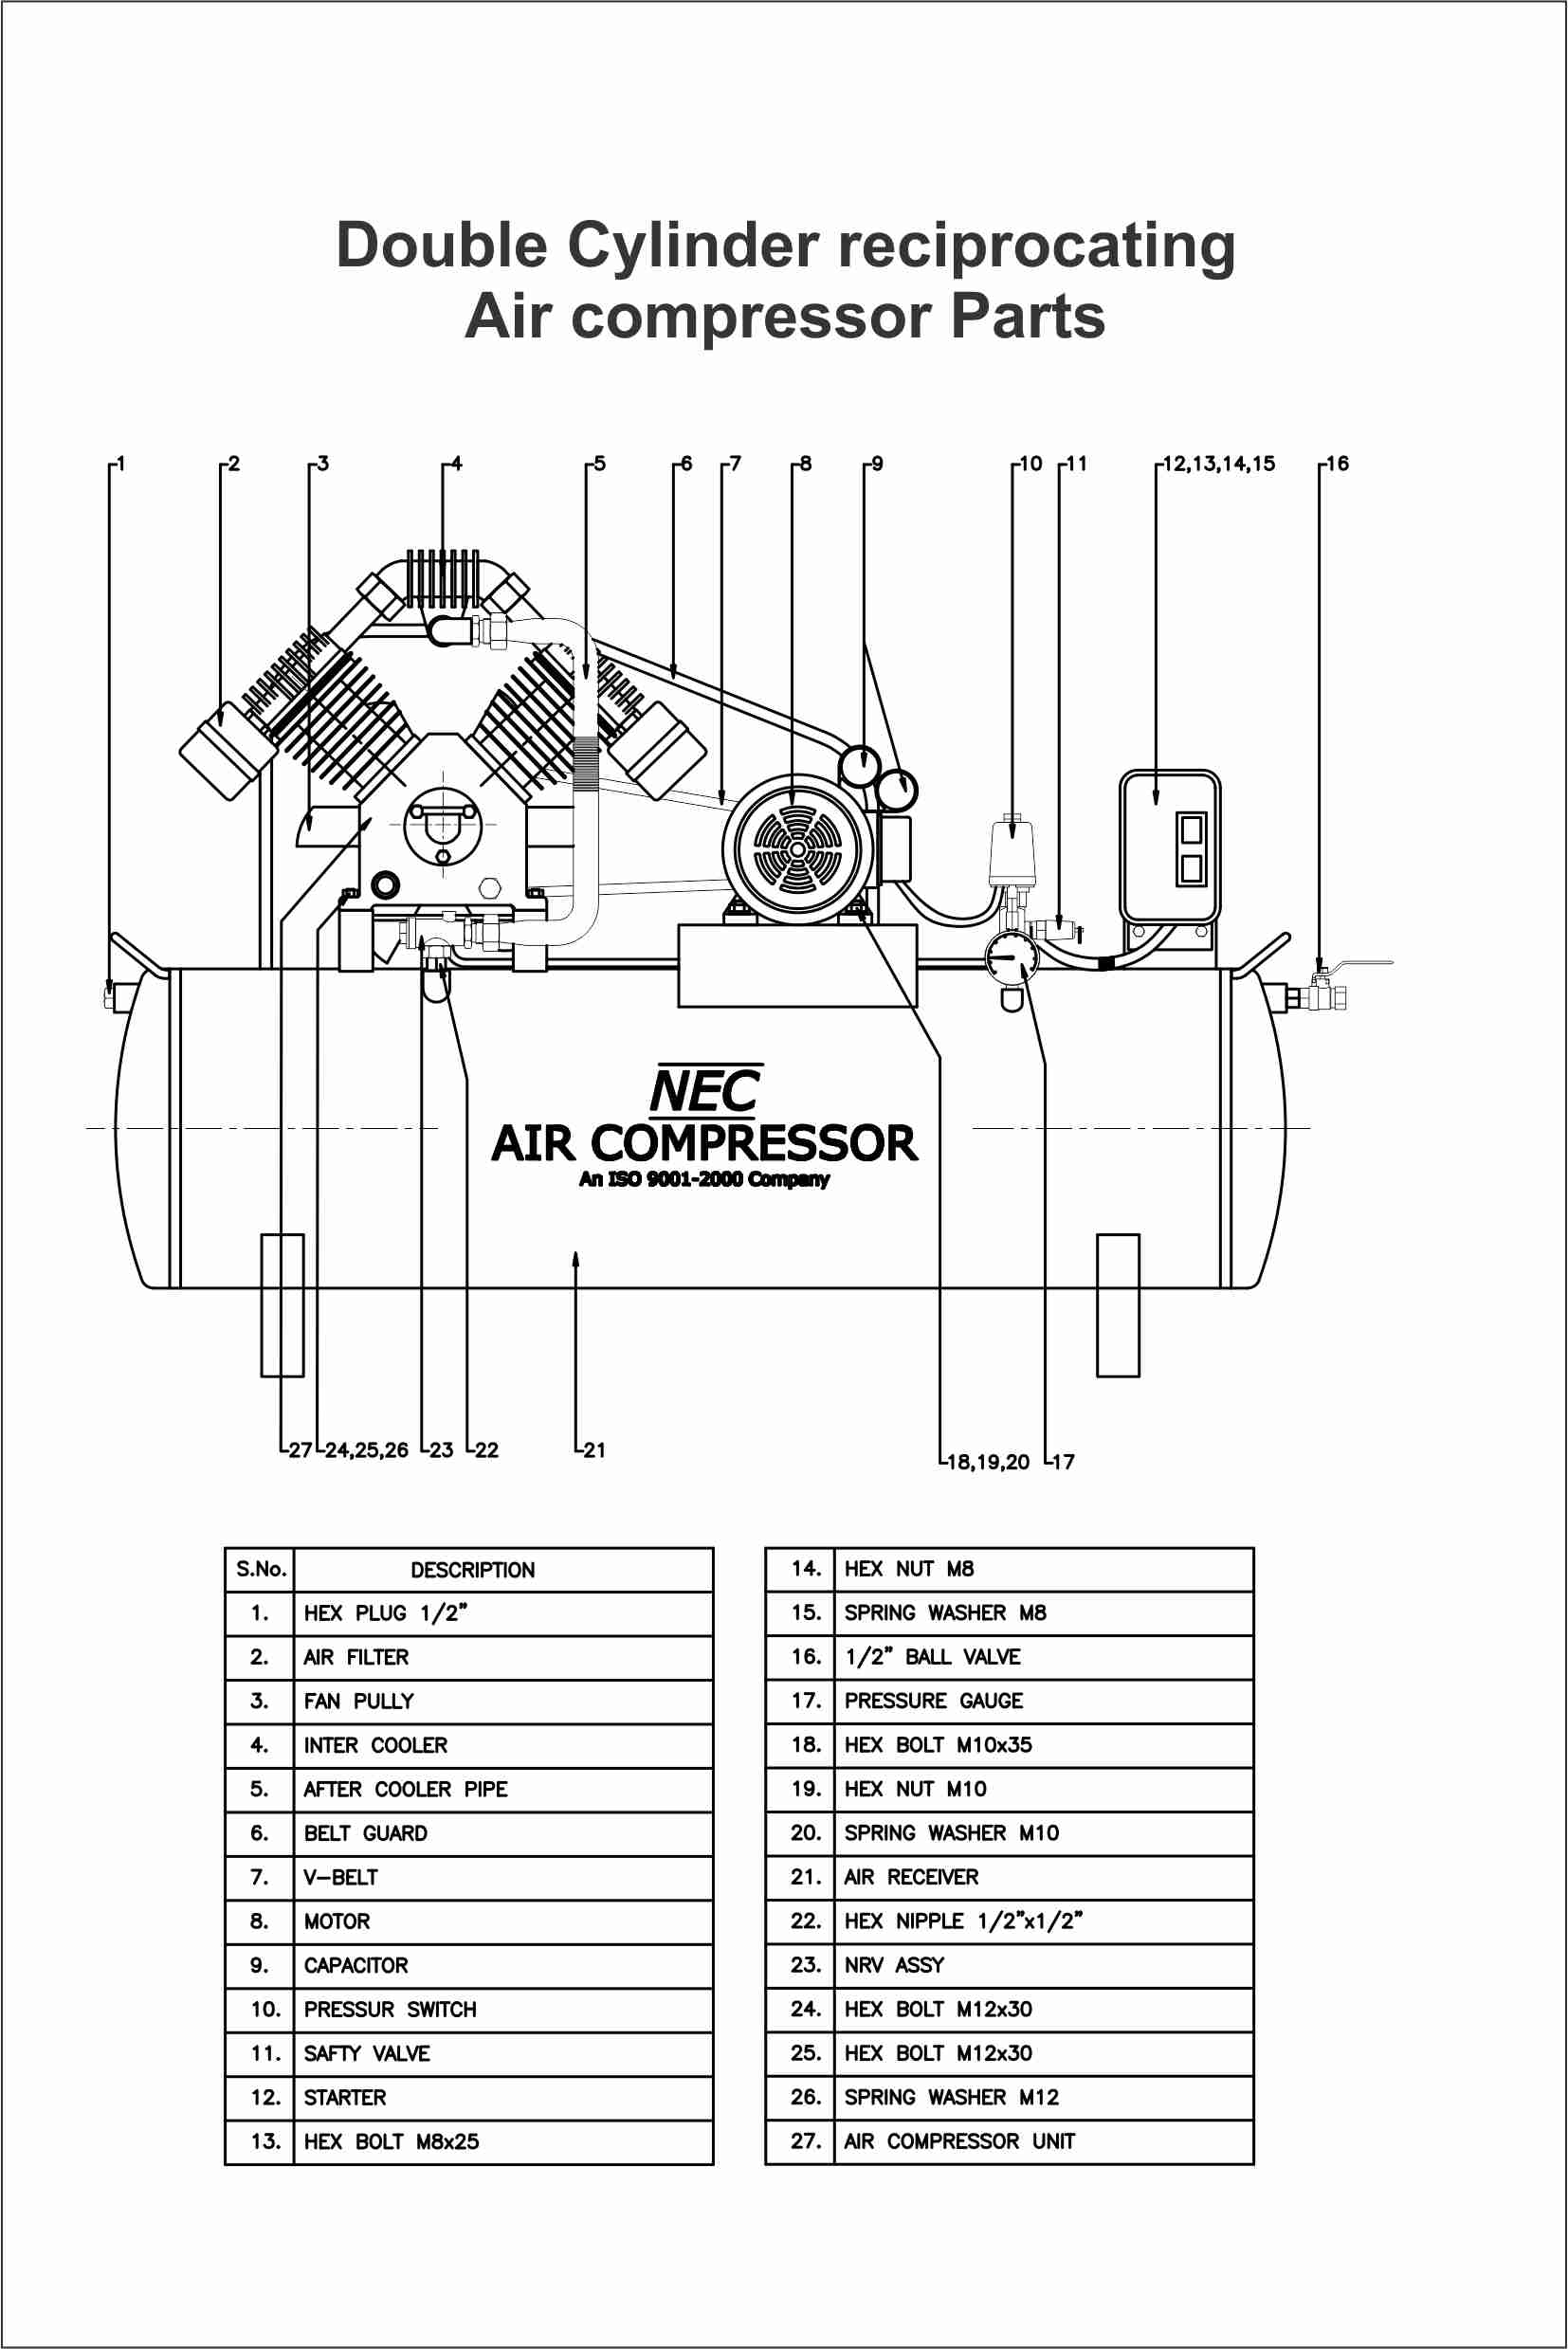 Reciprocating Air Compressor Part Diagram